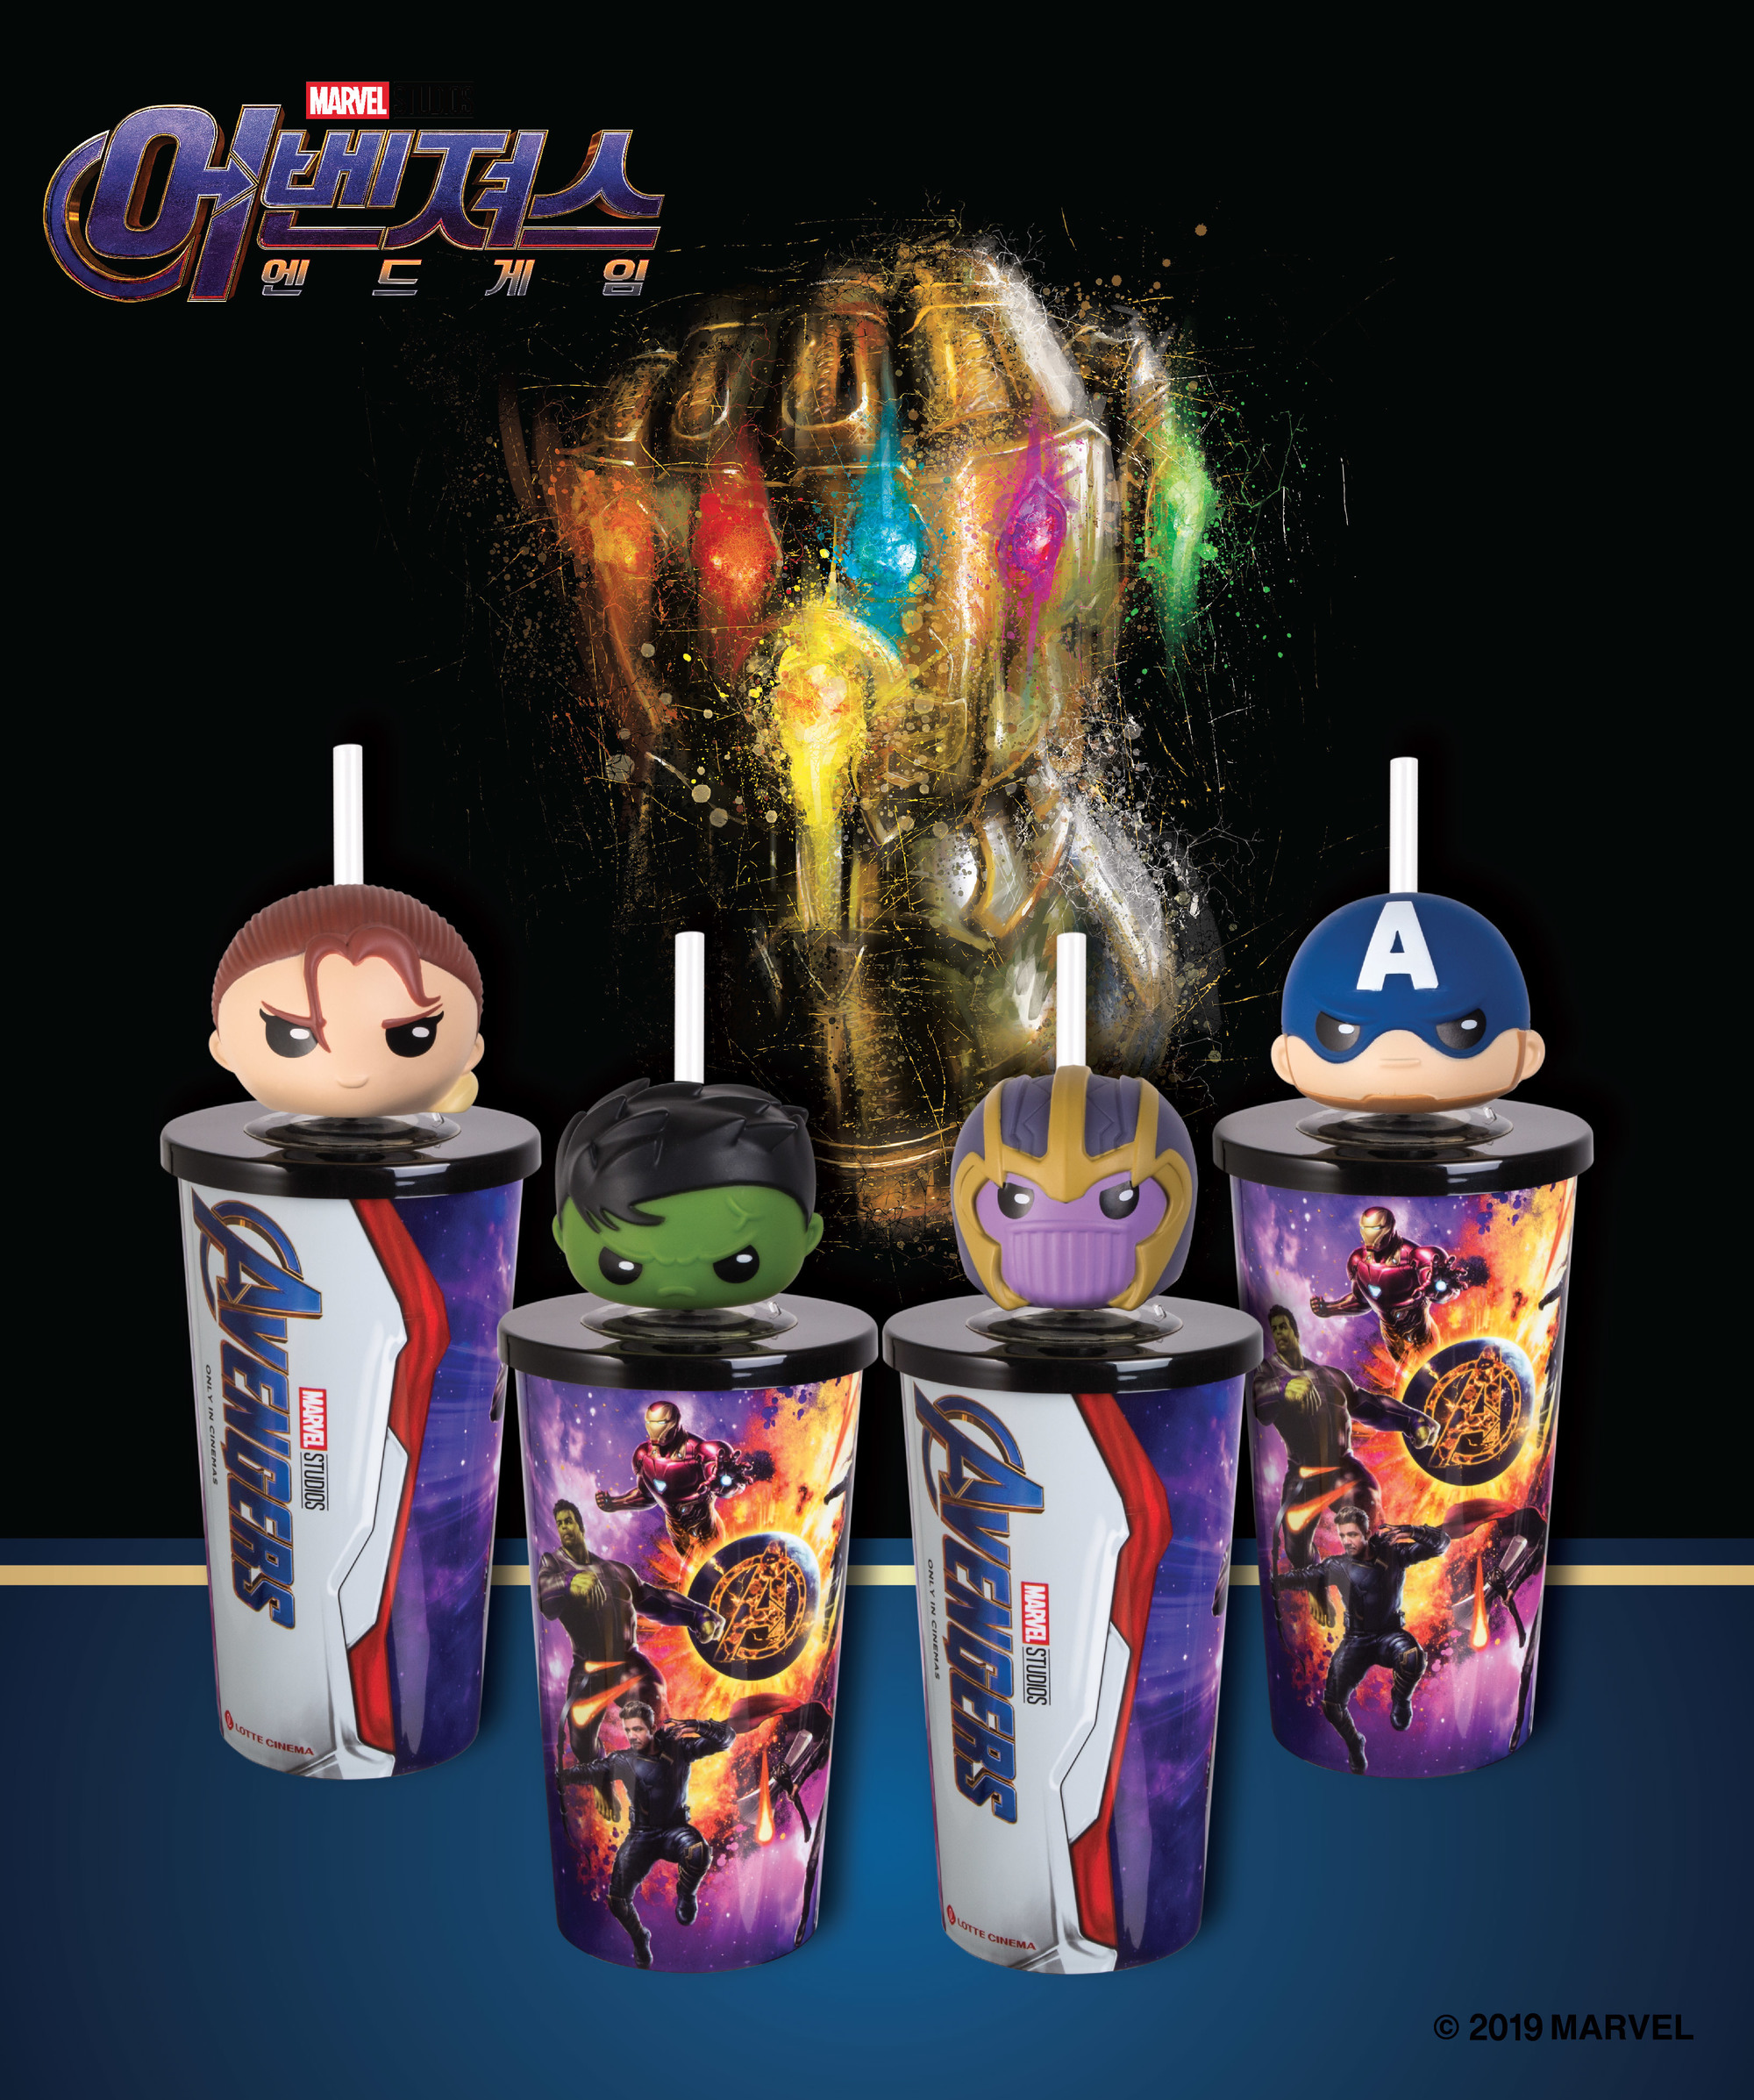 'Avengers: Endgame, 2019' - TOY CUP  - LOTTE CINEMA